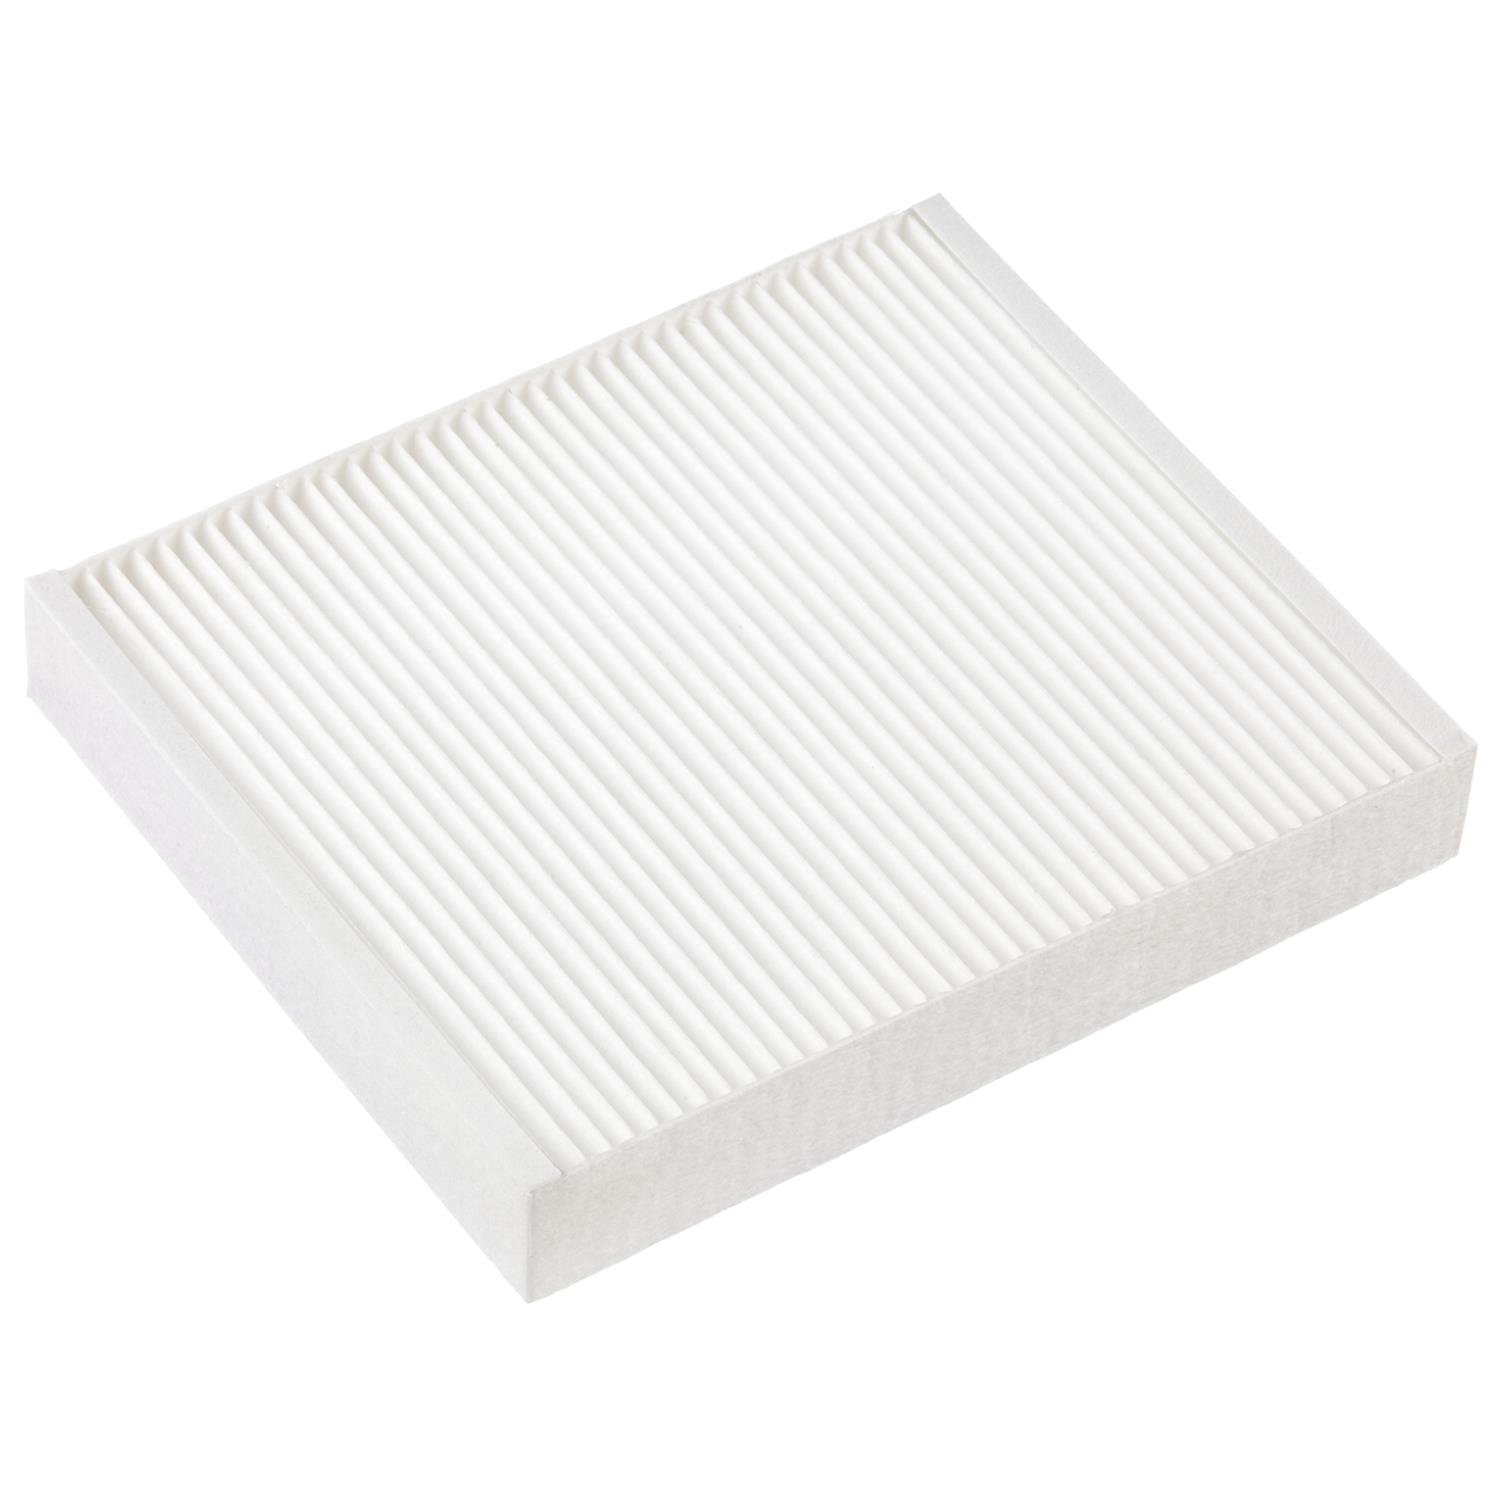 Atp Automotive Cf 247 Replacement Cabin Filter